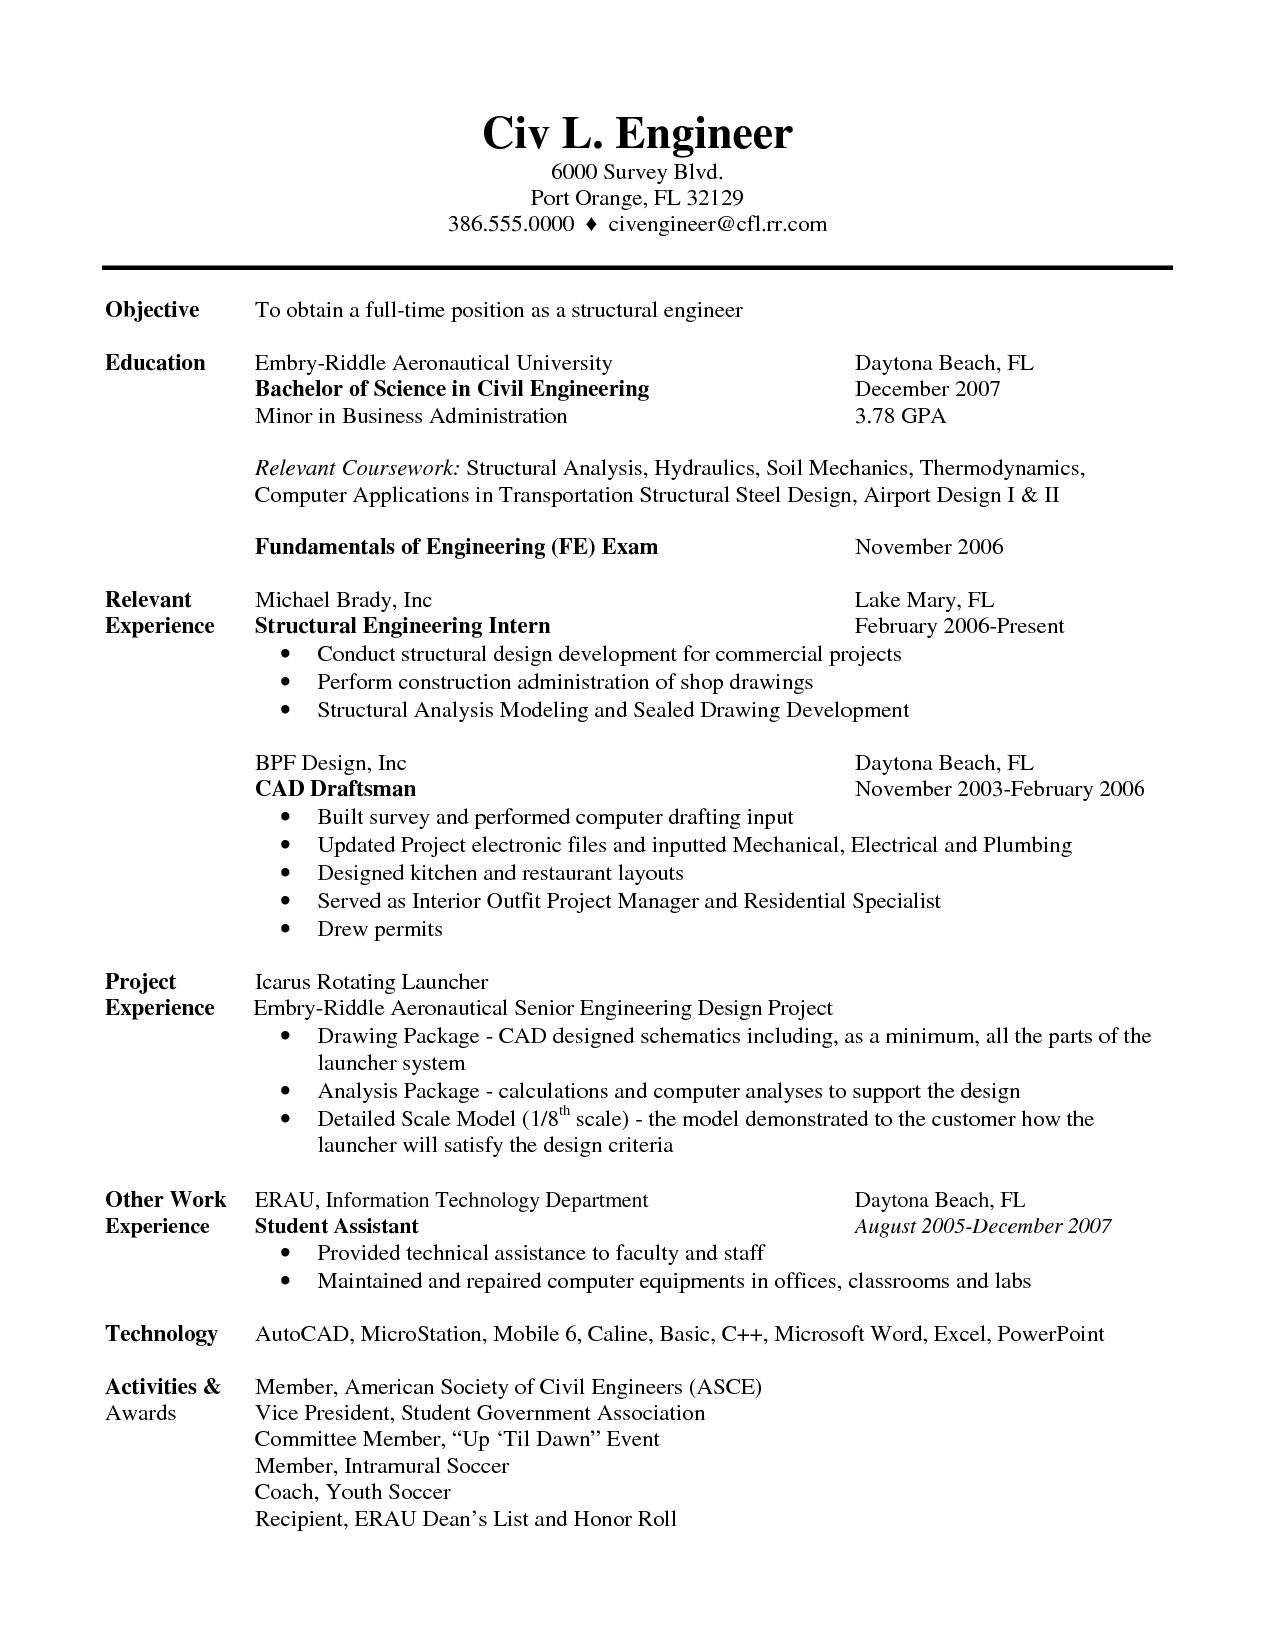 Resume Template Pinterest Image Result For Mechanical Engineering Student Resume